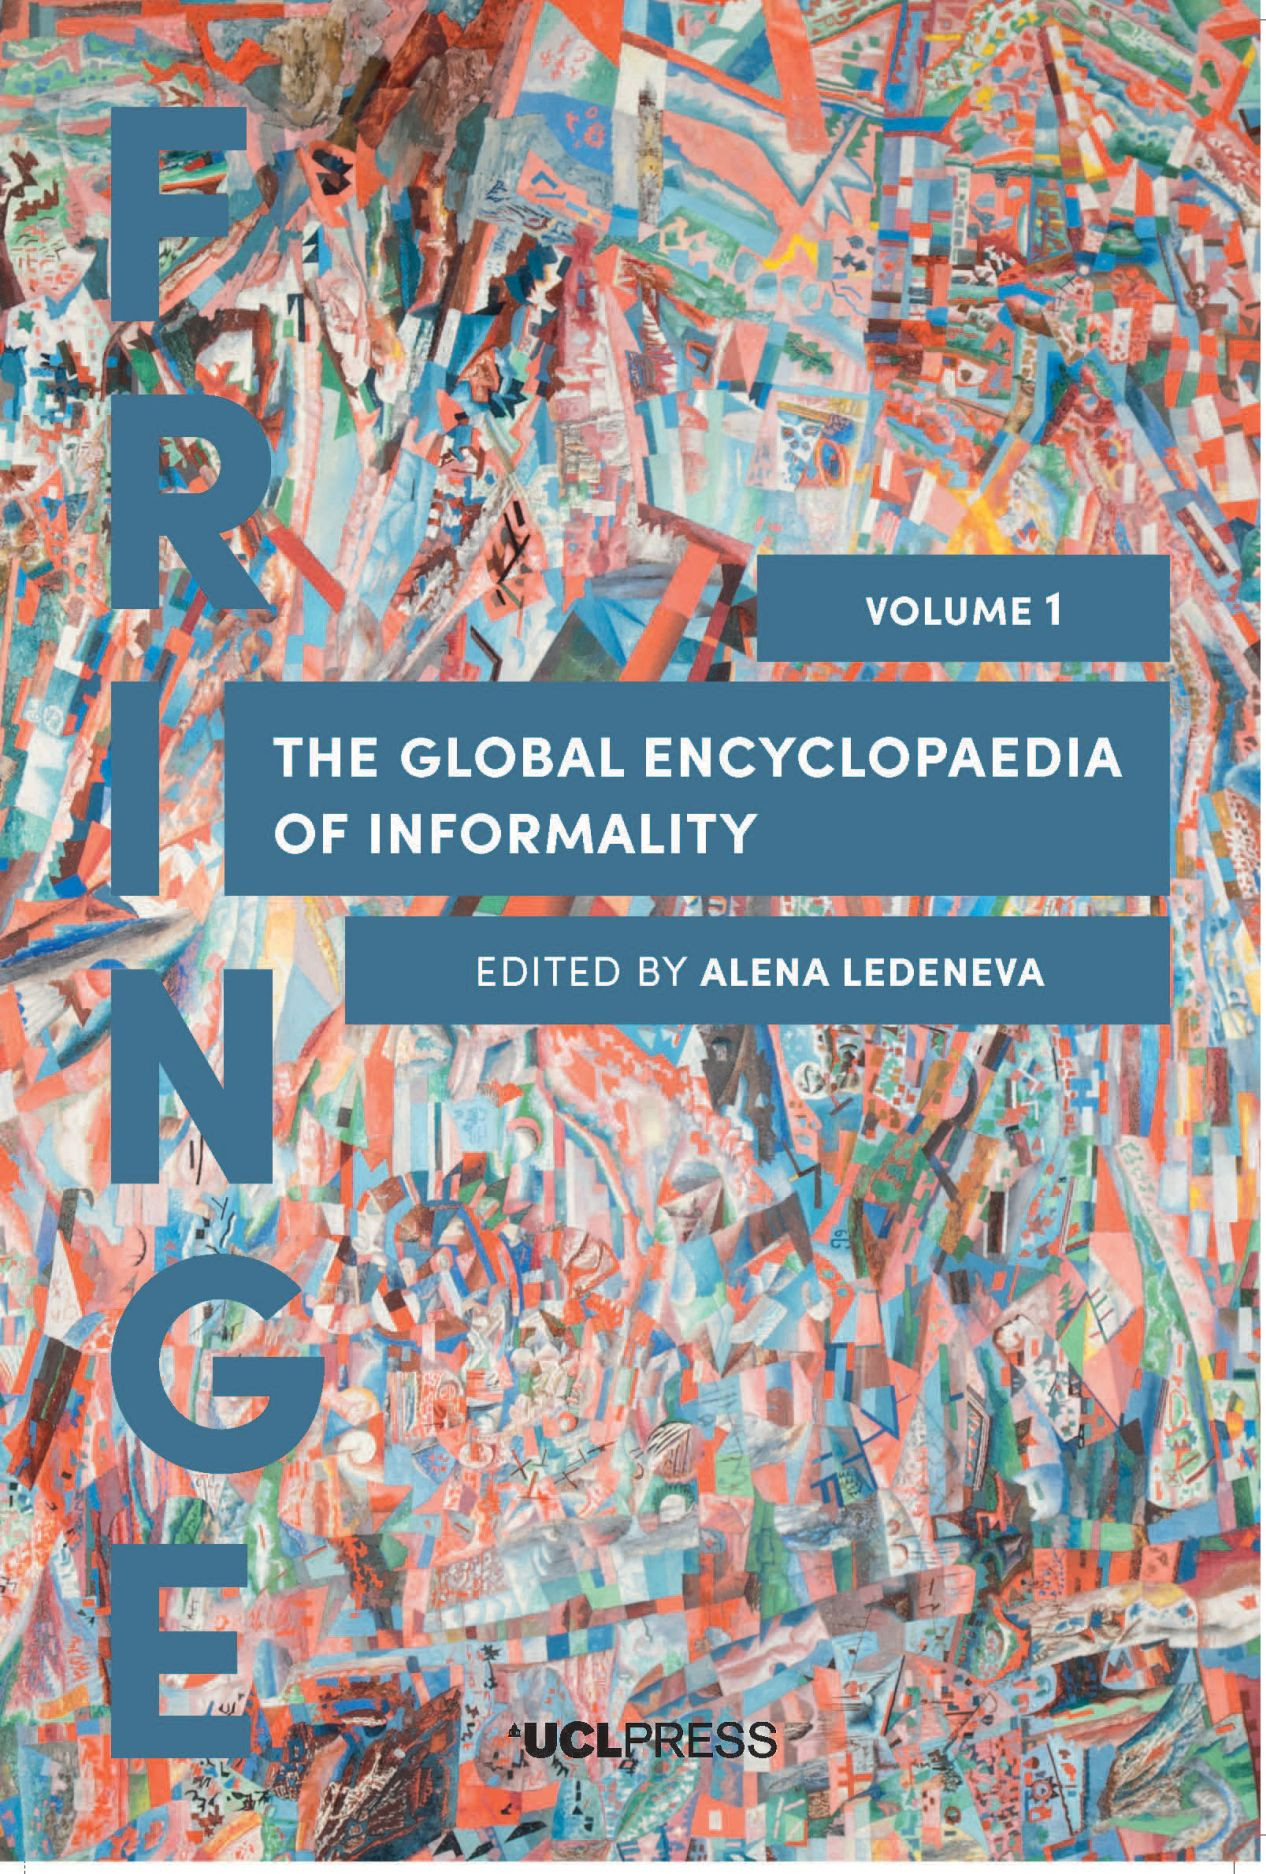 The Global Encyclopaedia of Informality, Volume I: Towards Understanding of Social and Cultural Complexity